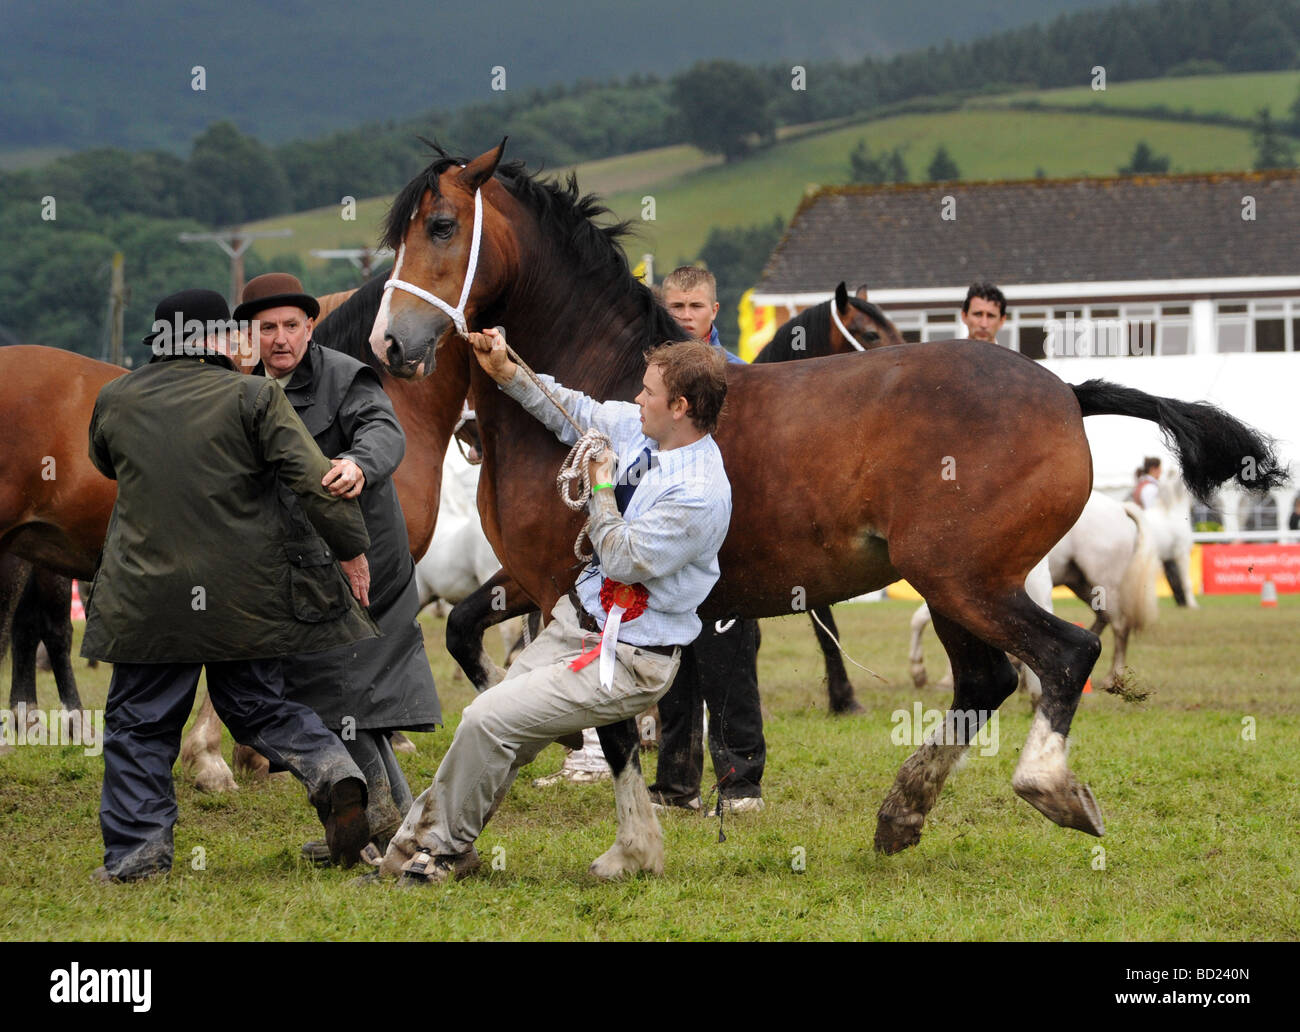 Judges move away from frisky 3 year old mare winner RWS Royal Welsh Show 2009 - Stock Image